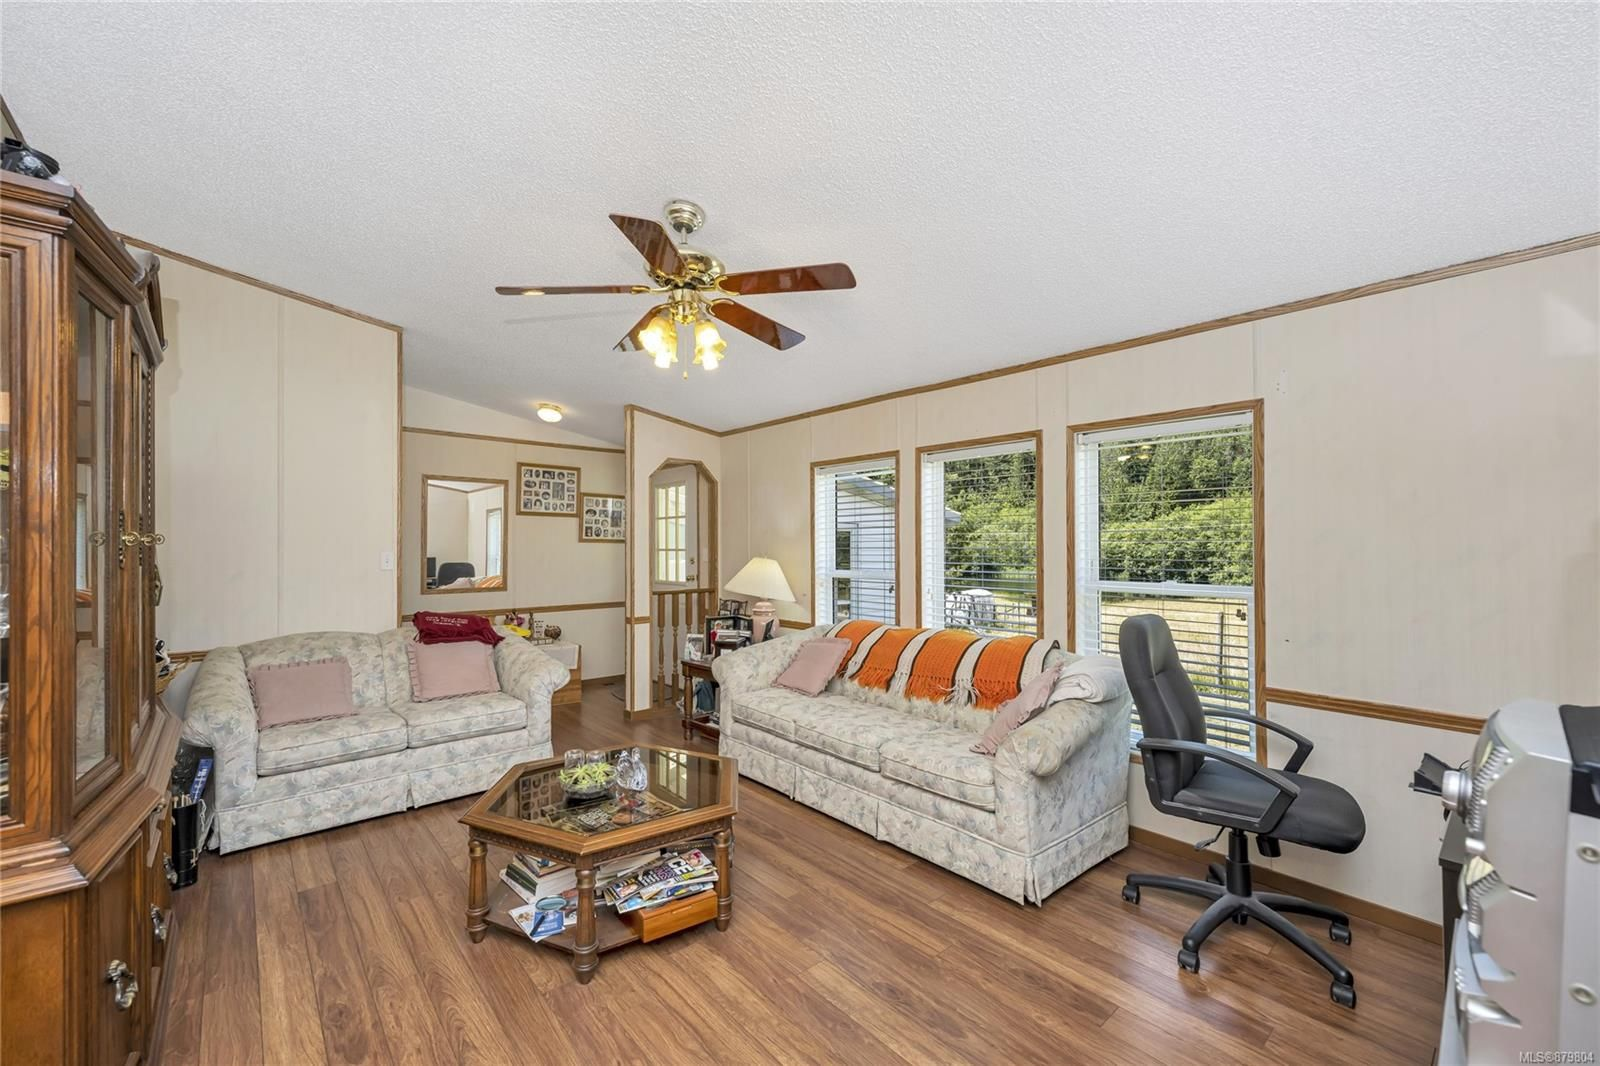 Photo 26: Photos: 3596 Riverside Rd in : ML Cobble Hill Manufactured Home for sale (Malahat & Area)  : MLS®# 879804